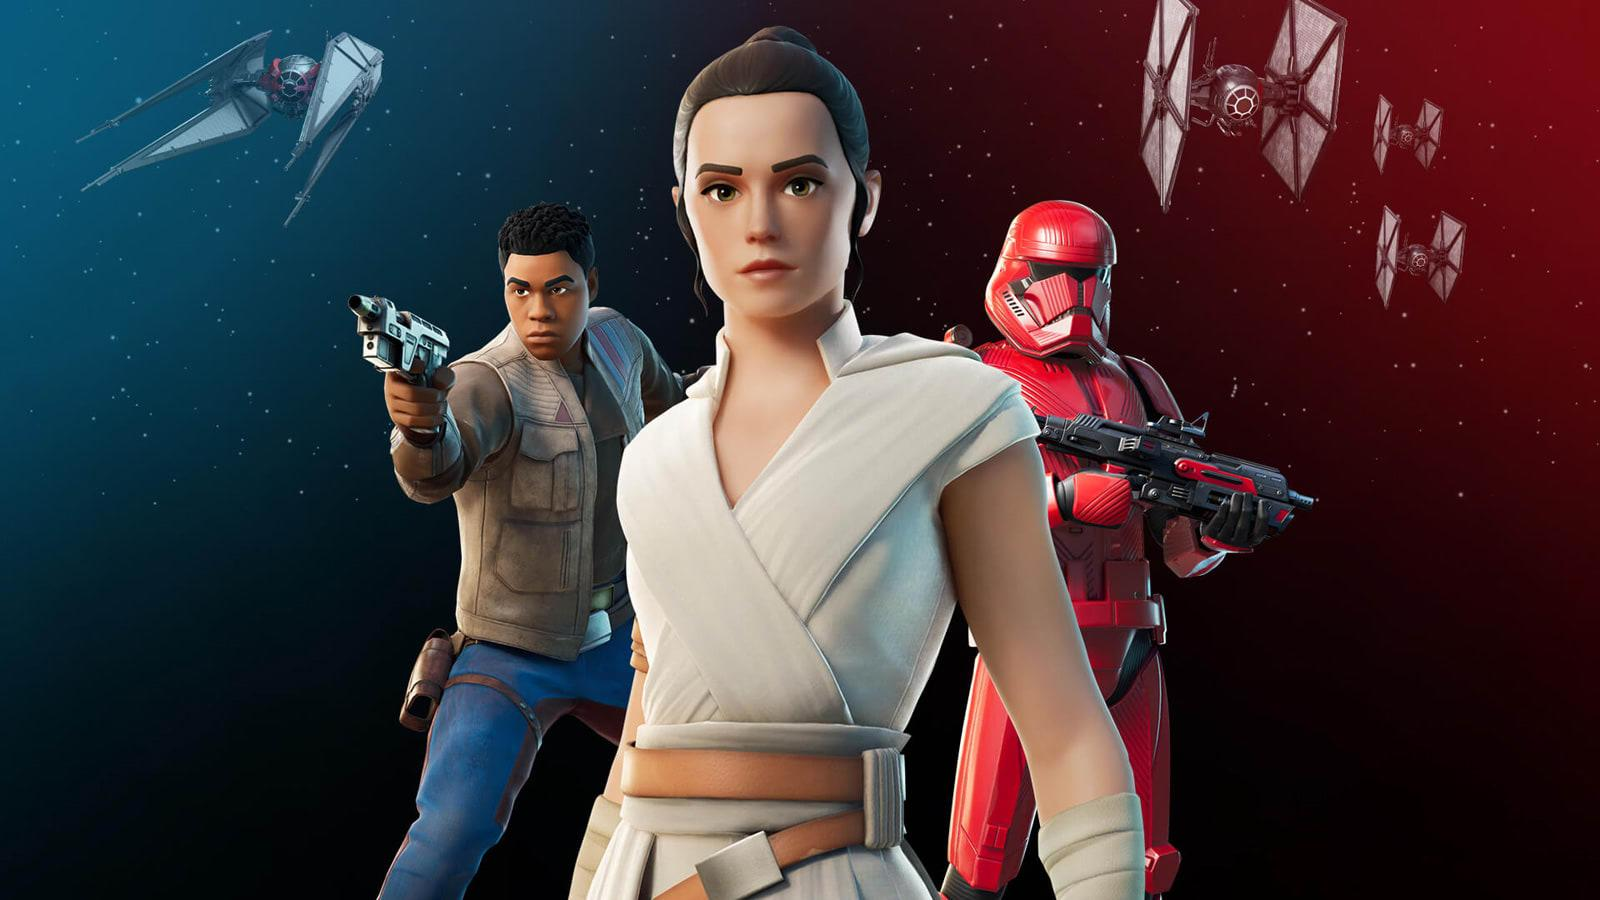 Fortnite Client fortnite' adds lightsabers following star wars event